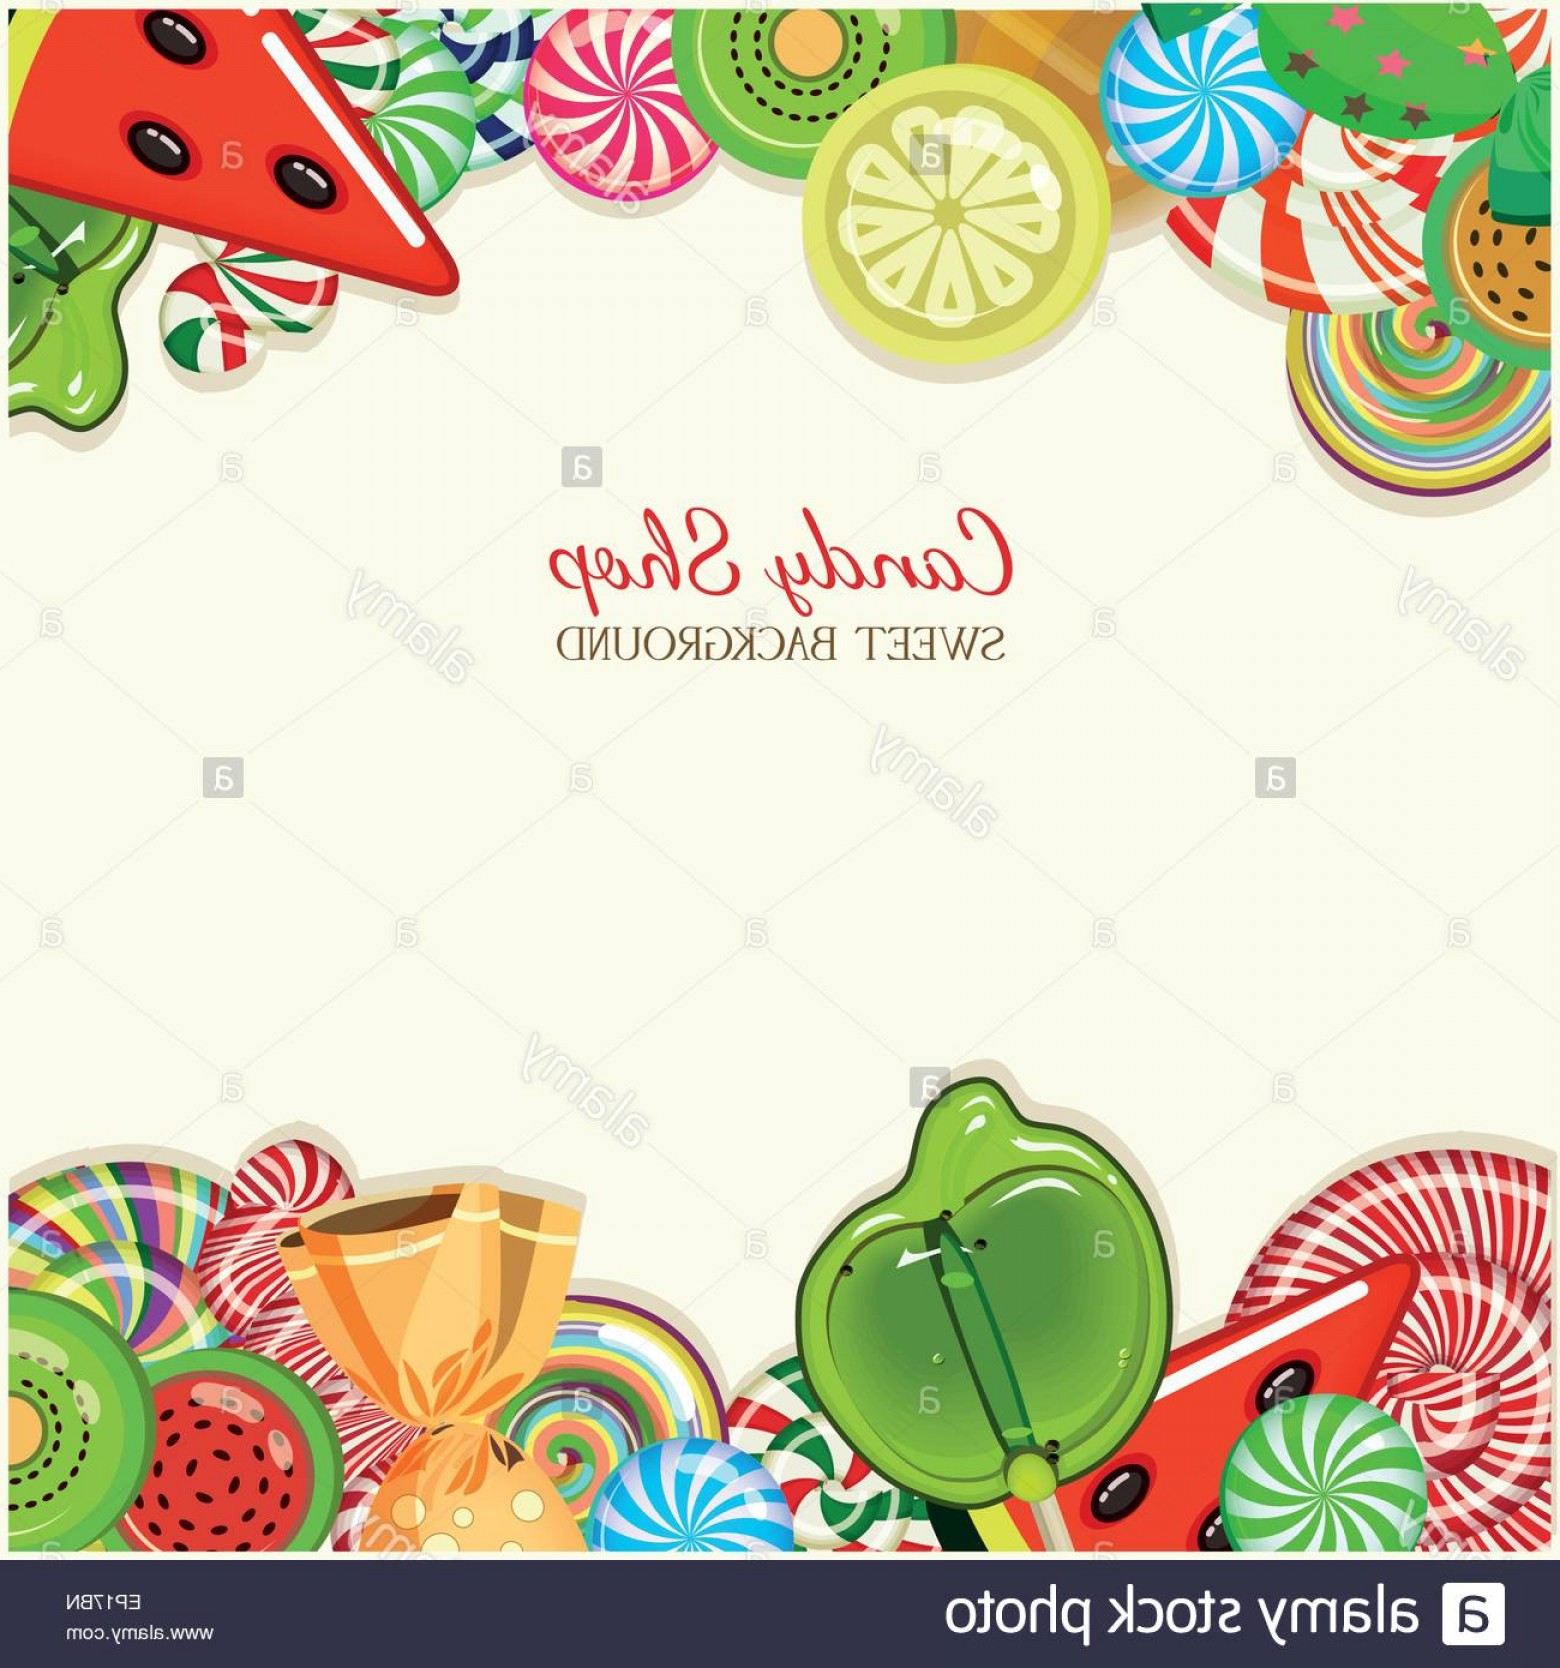 Candy Shop Vector: Stock Photo Candy Shop Frame Vector Illustration Background With Sweets In Vintage